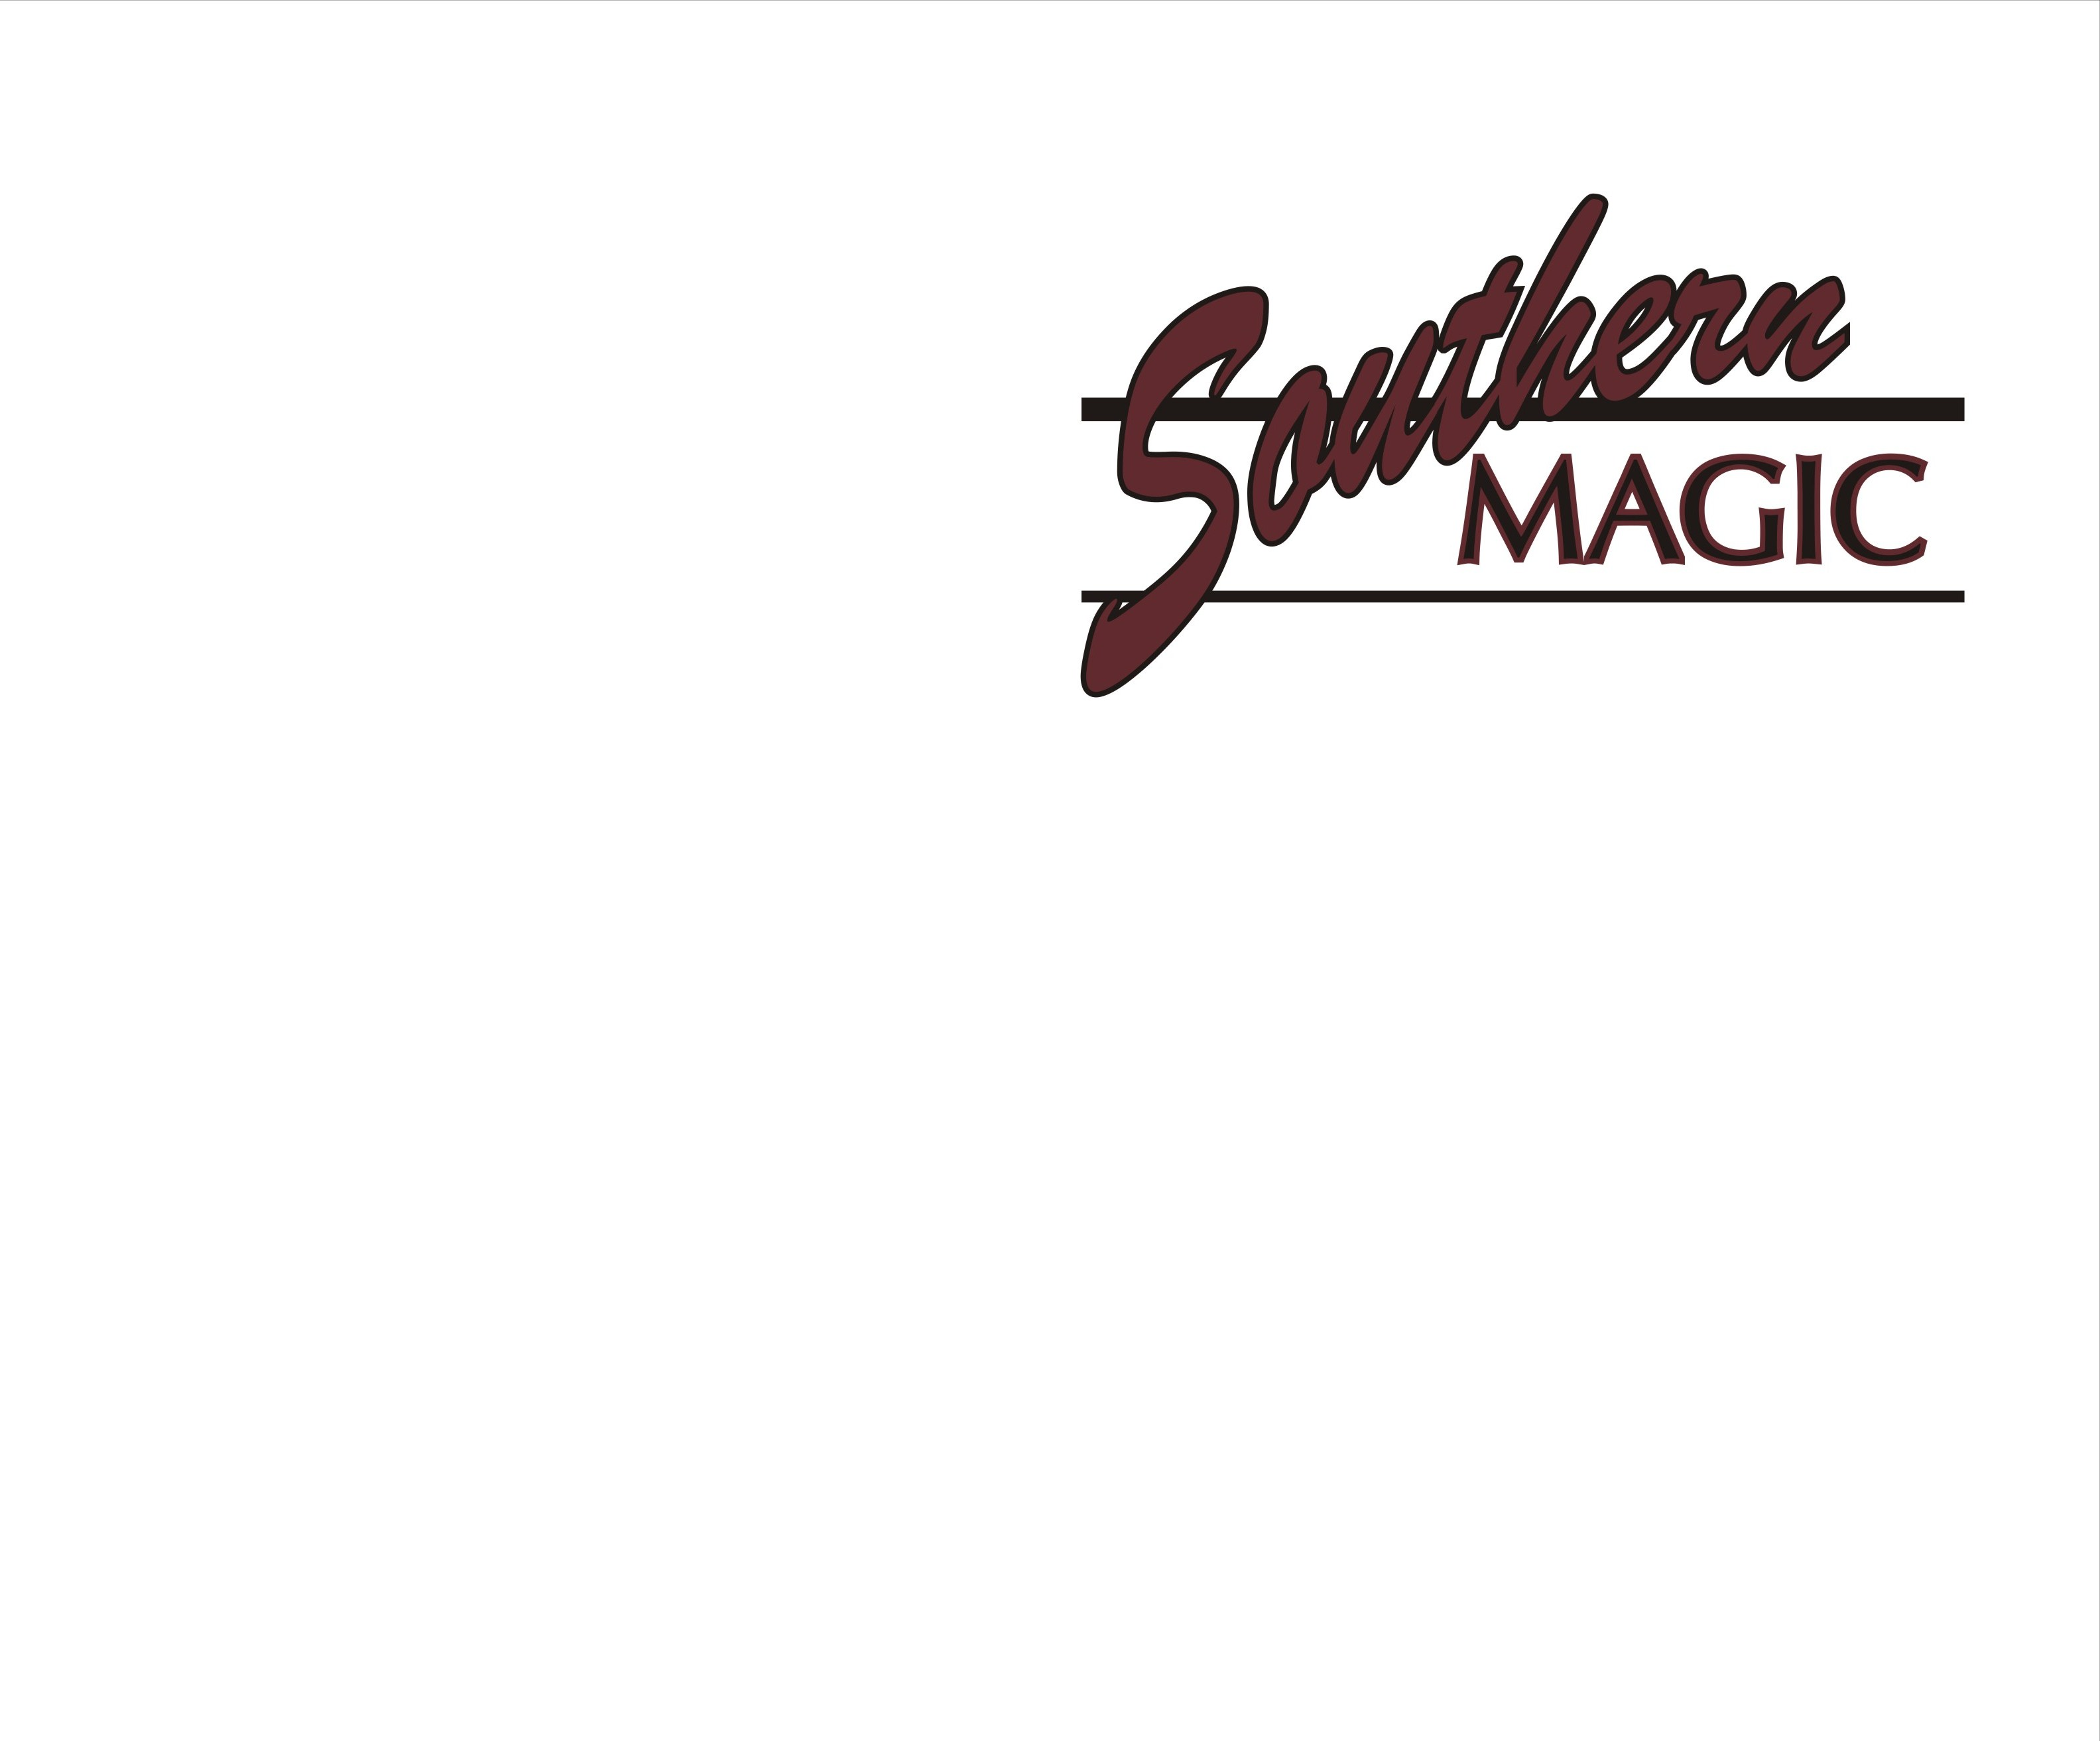 SOUTHERN MAGIC -- GRAYSON, GA